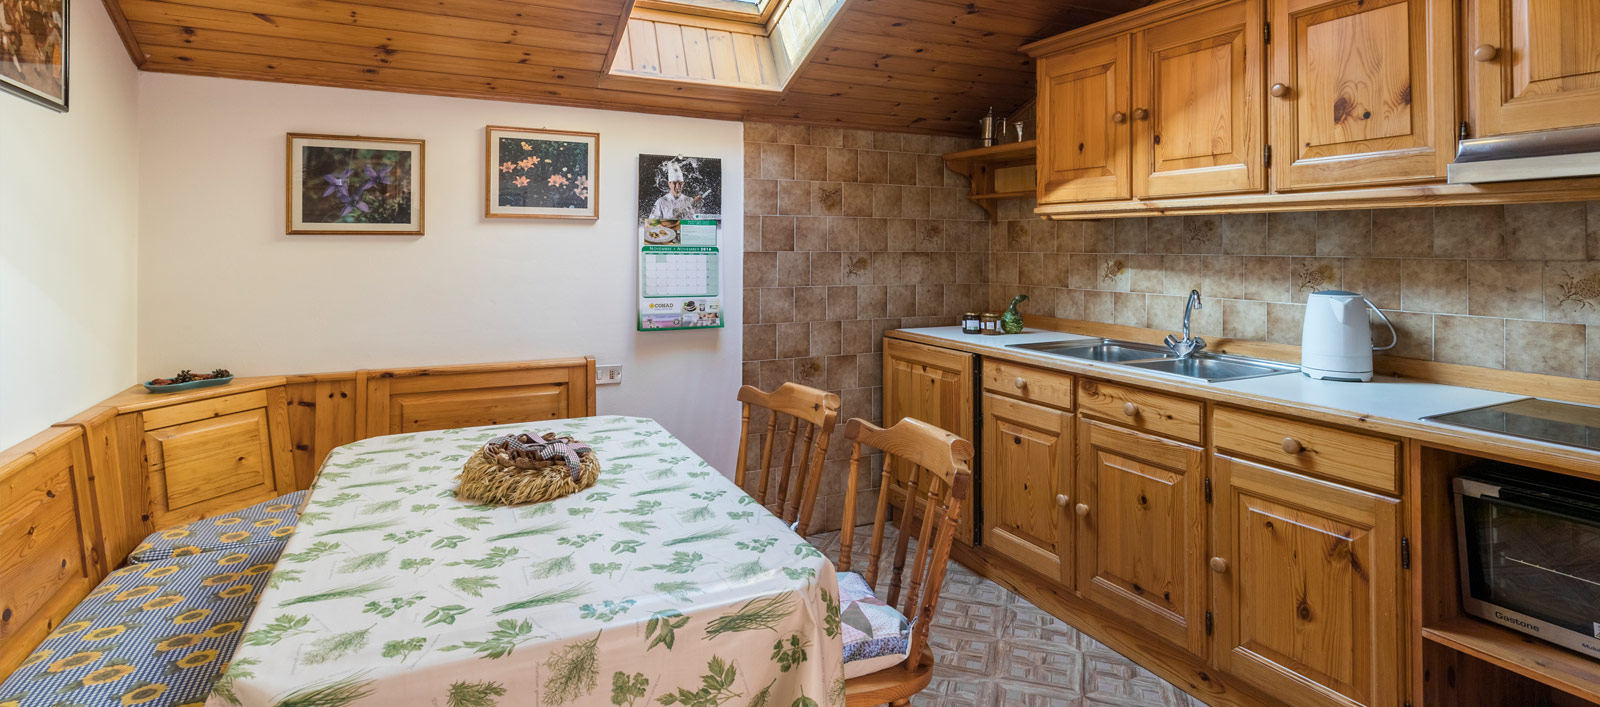 Holiday apartments in Val di Fassa, Soraga: Antermoia